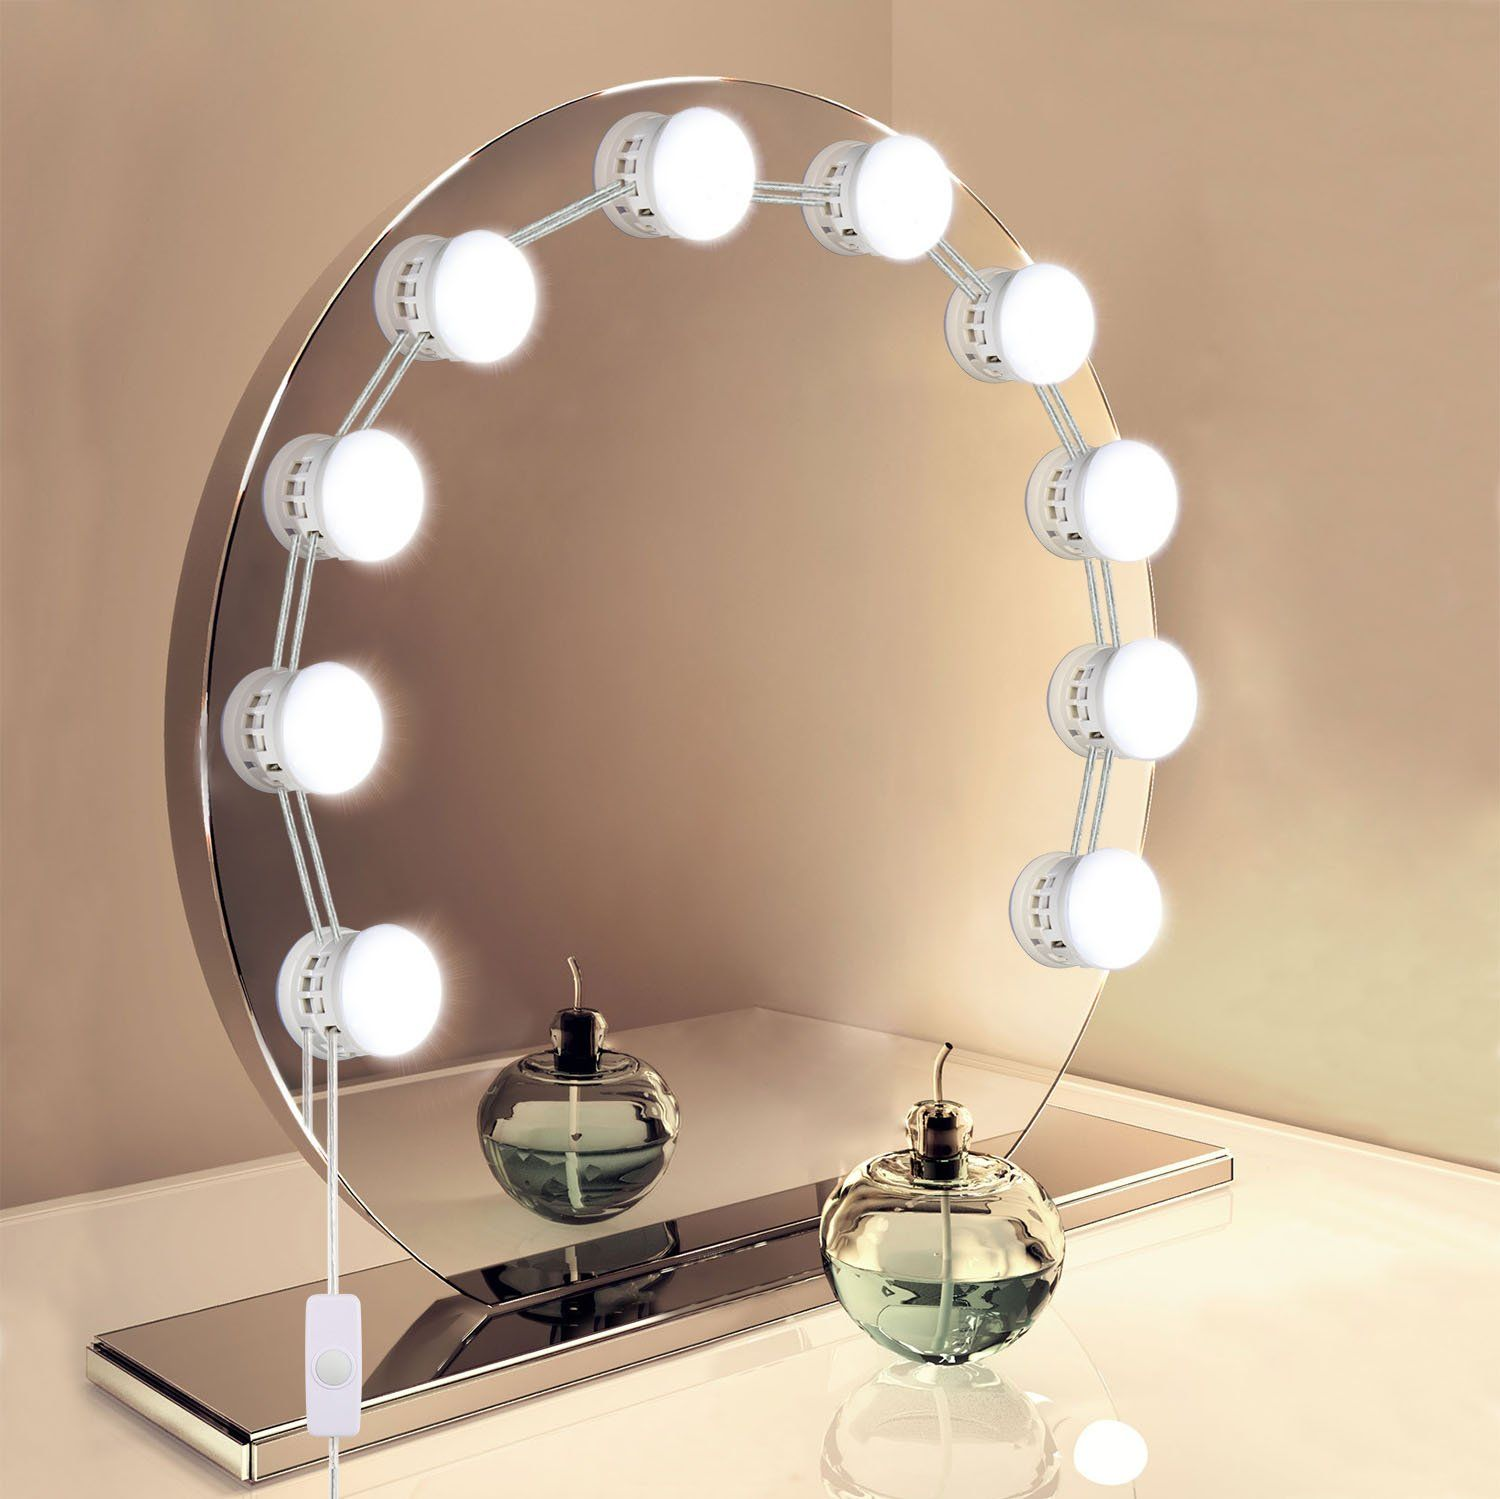 Vanity mirror lights unifun hollywood style led makeup mirror